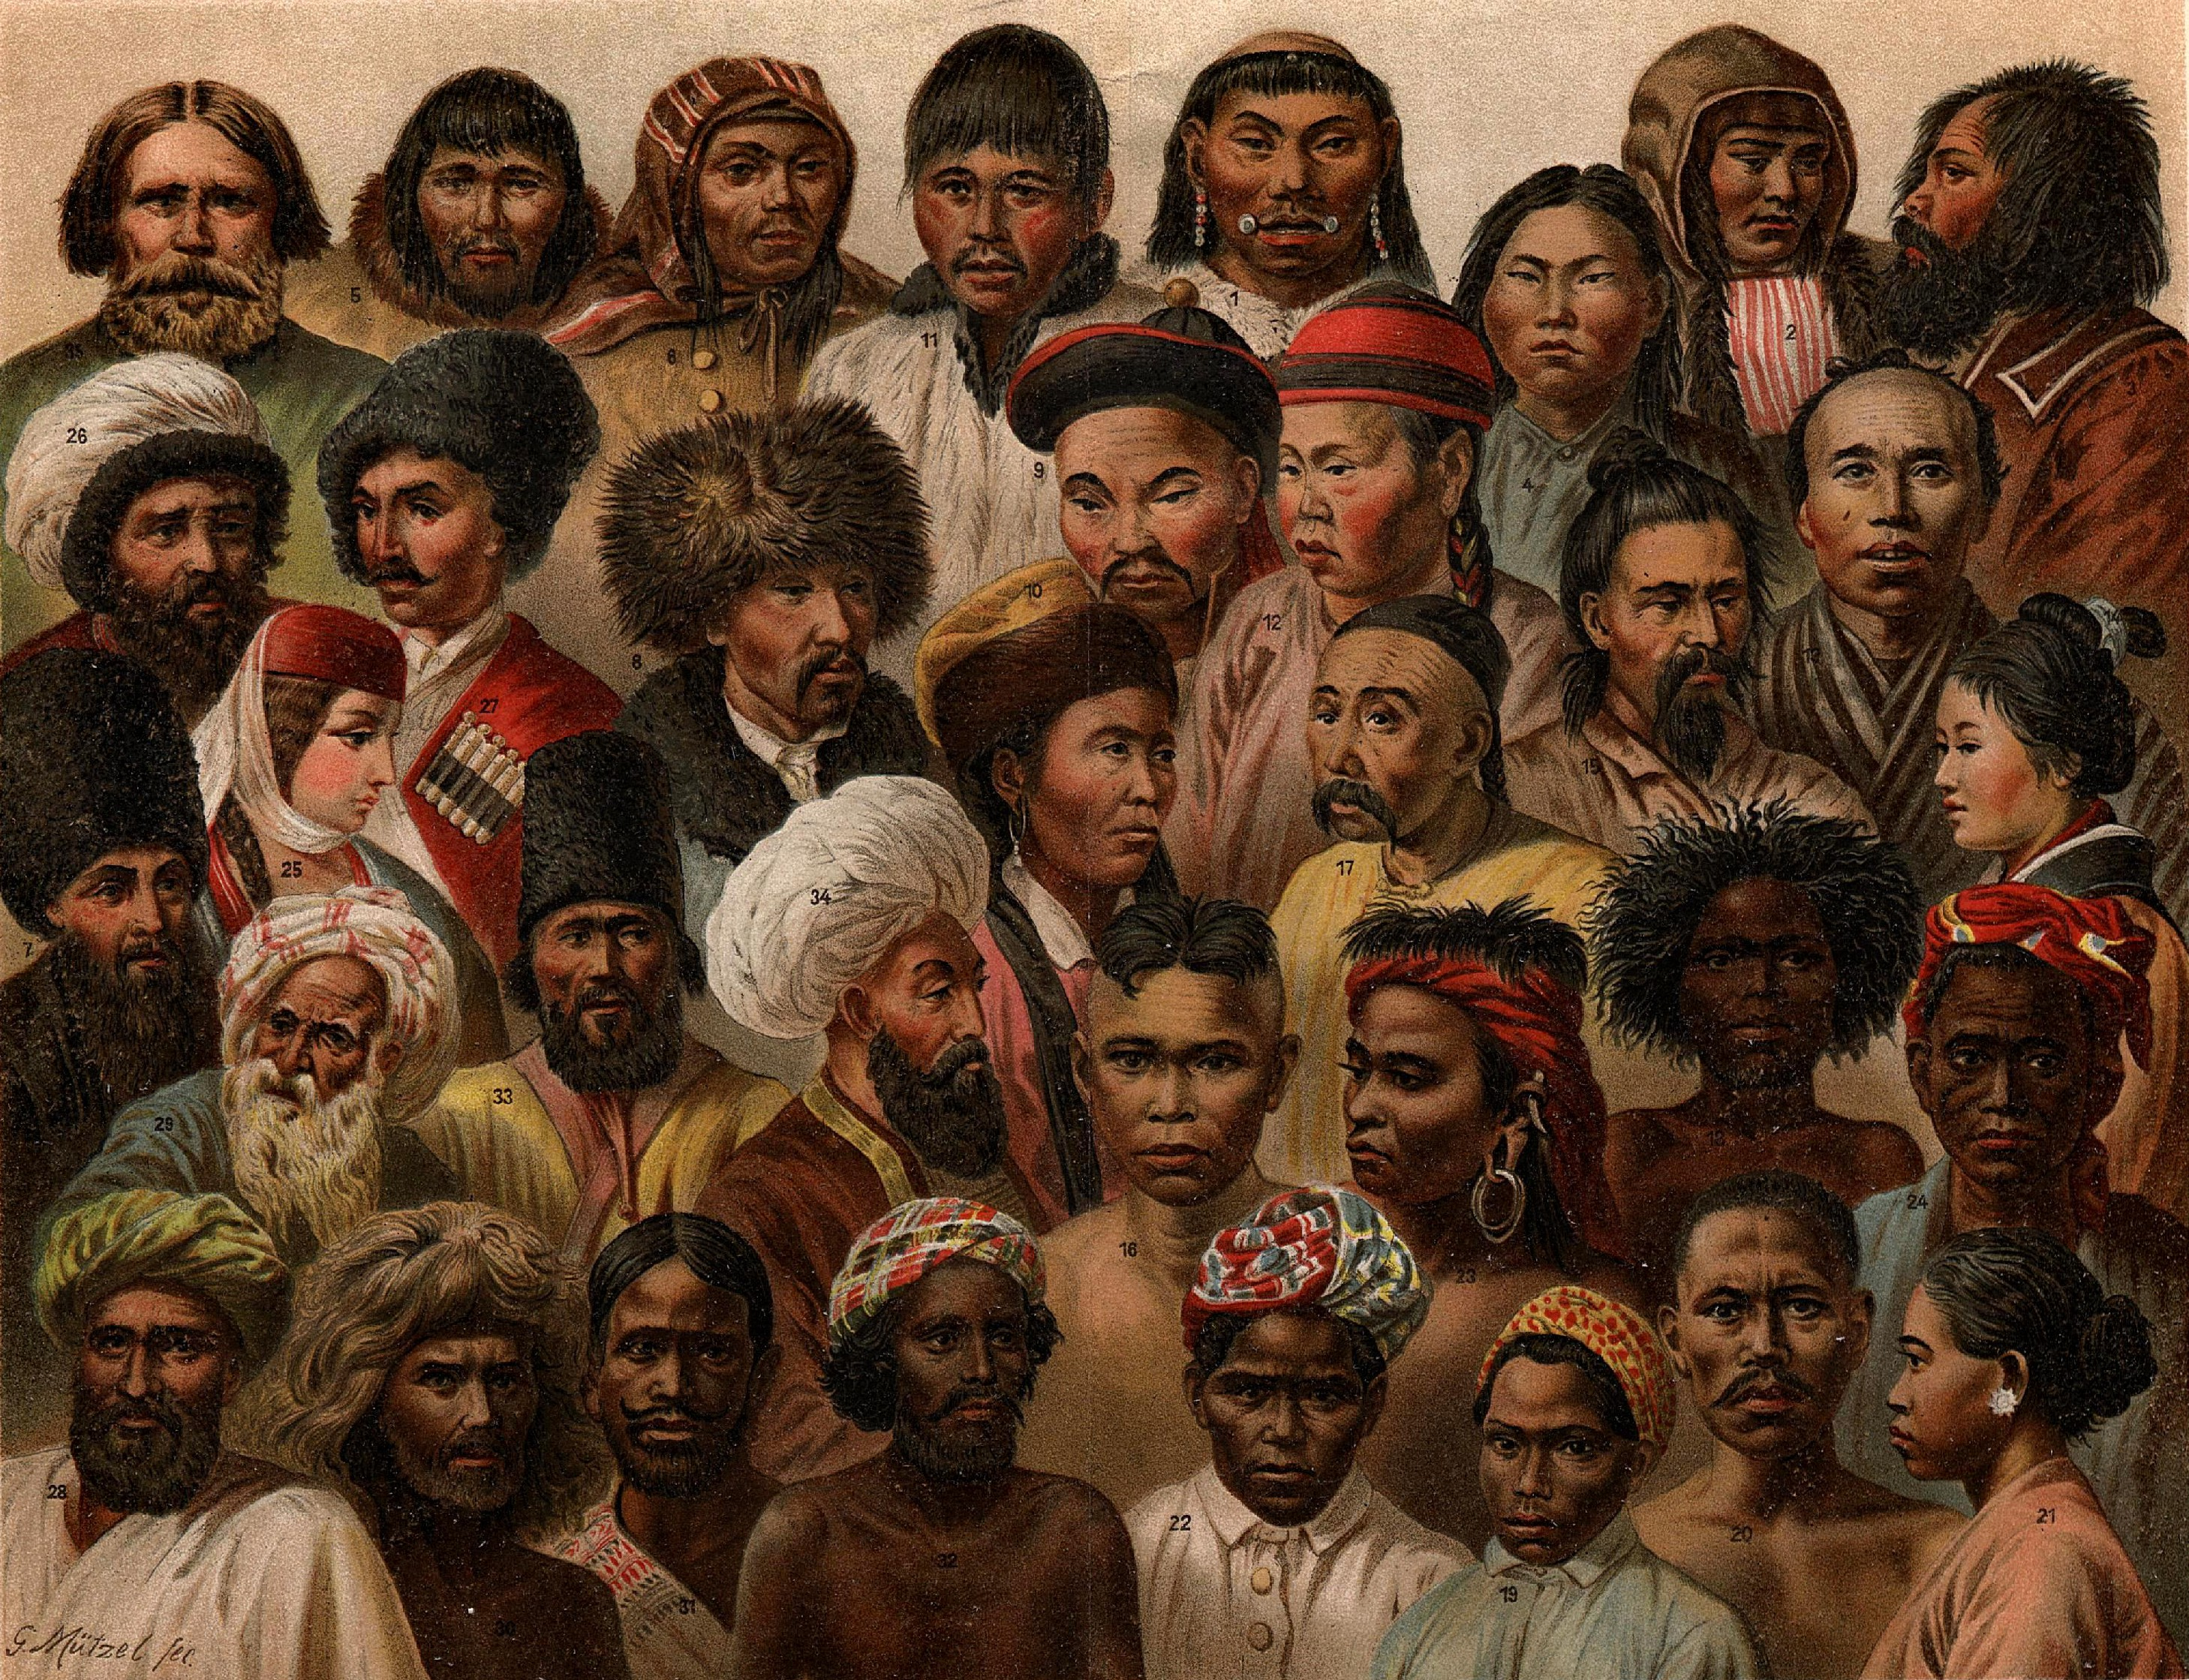 the classification of people by race in society